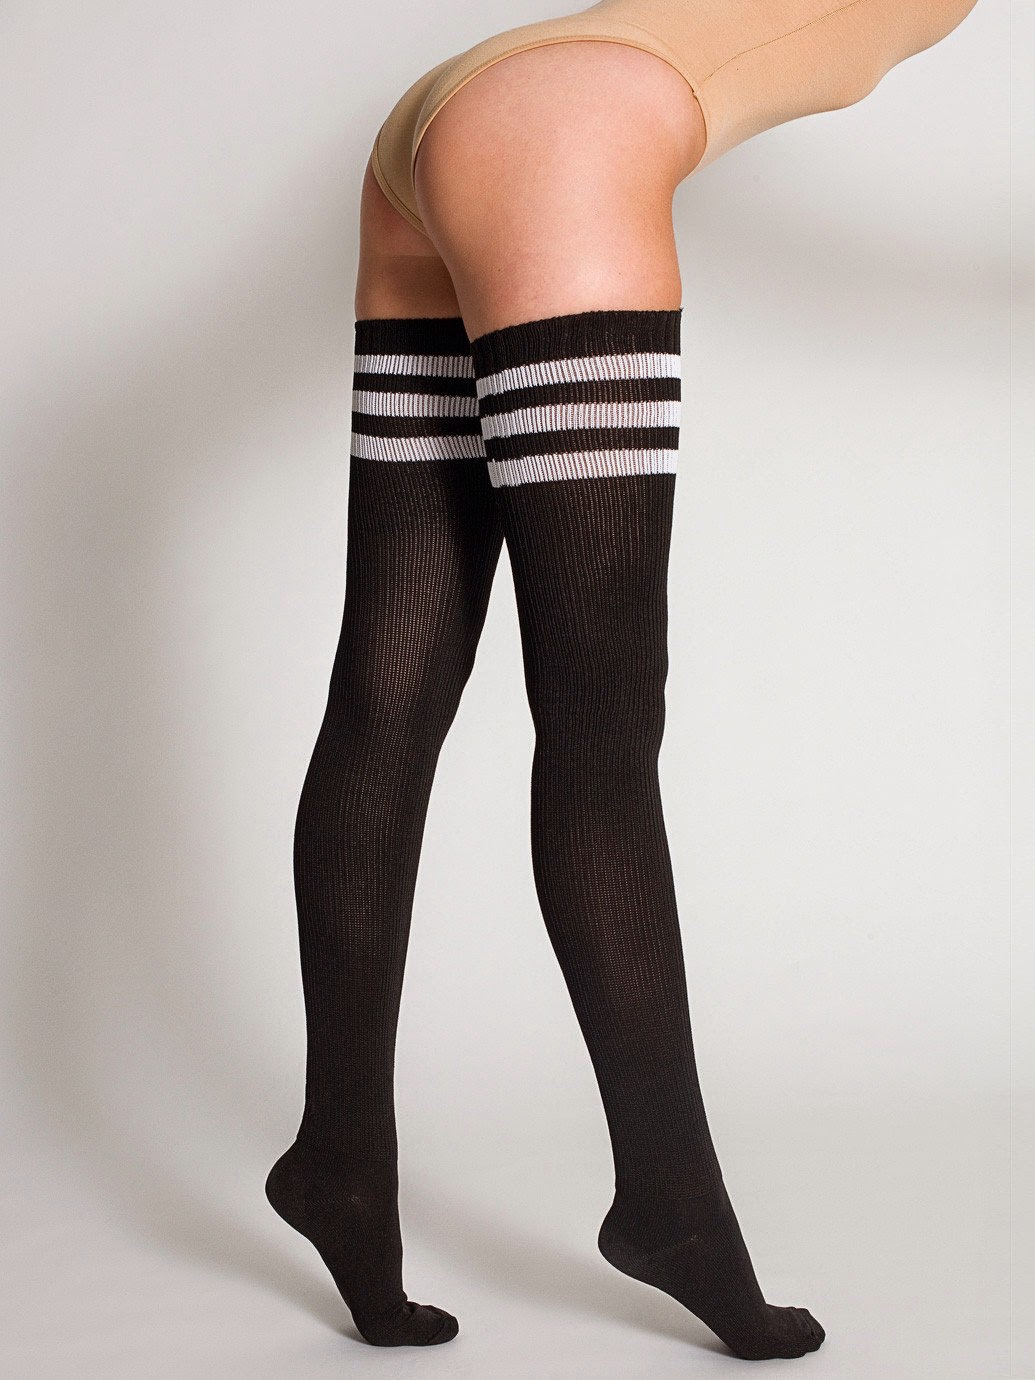 WOMEN'S THIGH-HIGH BLACK KNIT SOCKS WITH THREE WHITE STRIPES